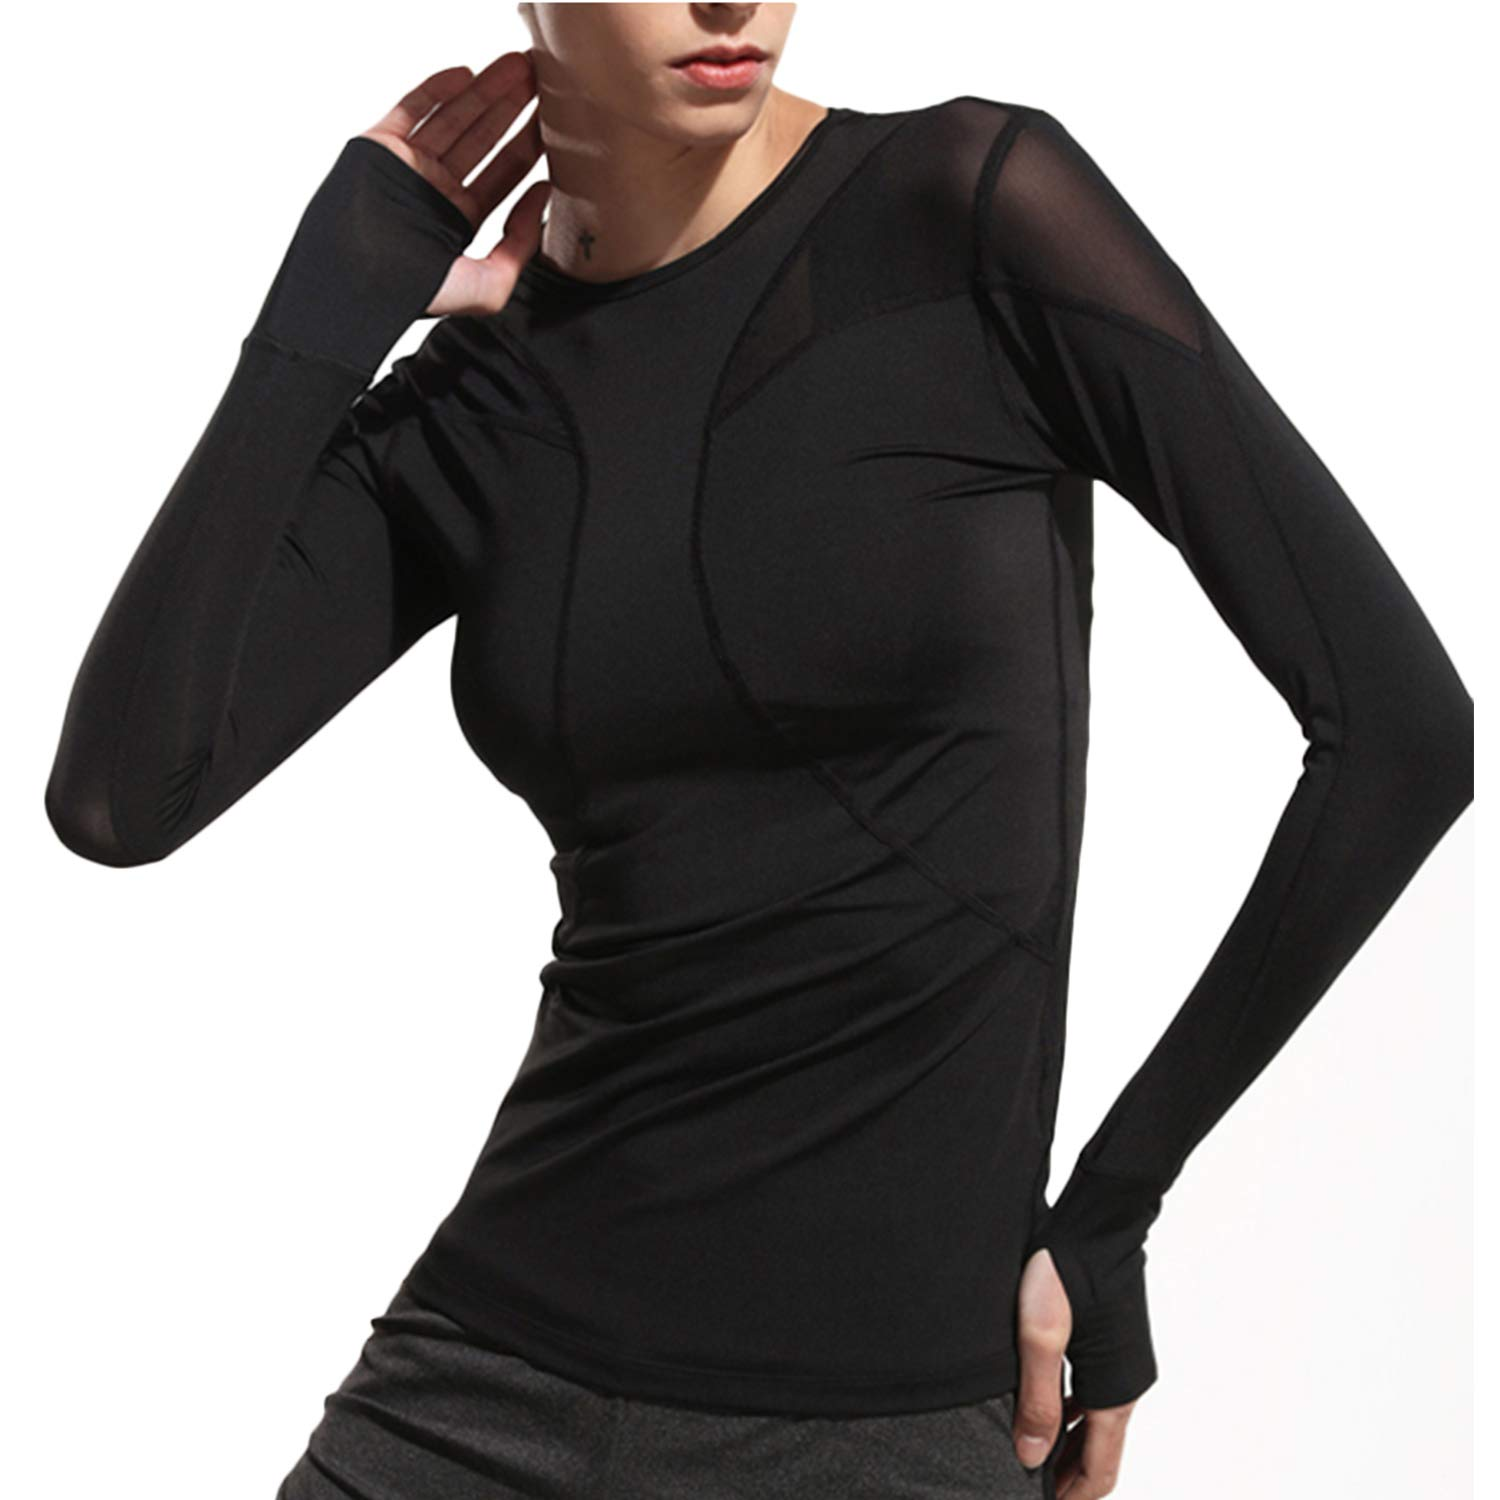 UDIY Athletic Wear for Women Shirts - Breahtable Mesh Long Sleeve Tee Running Shirt by UDIY